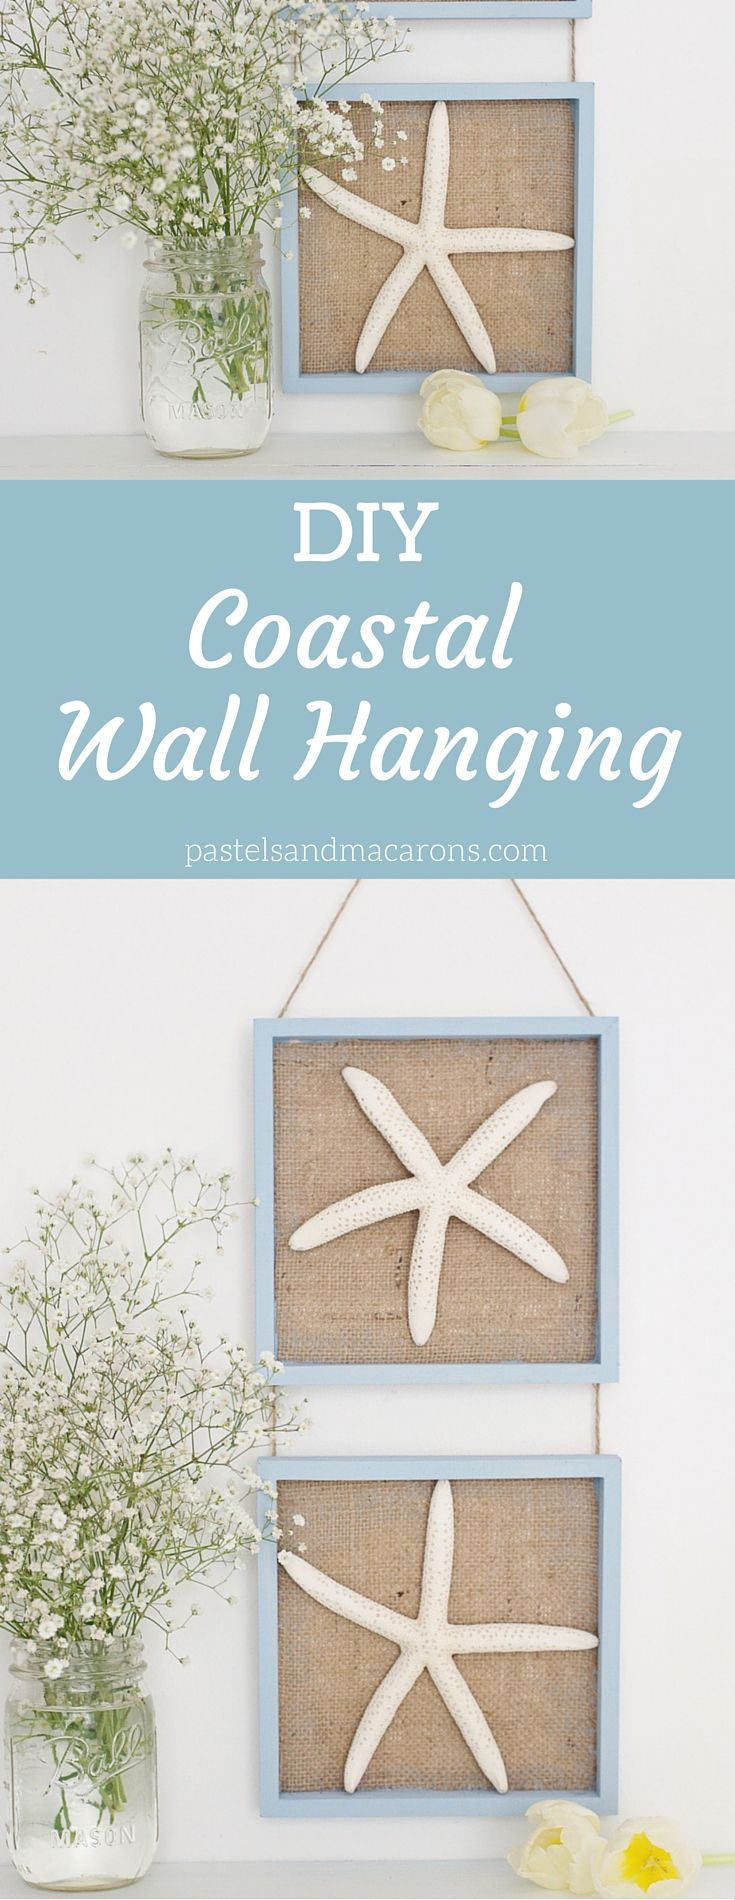 Nautical Wall Decor - Coastal Wall Hanging is a super easy to make burlap craft. This DIY project is super easy. Get some starfish, some burlap fabric and a few other bits and you can make something spectacular for any room in your home!